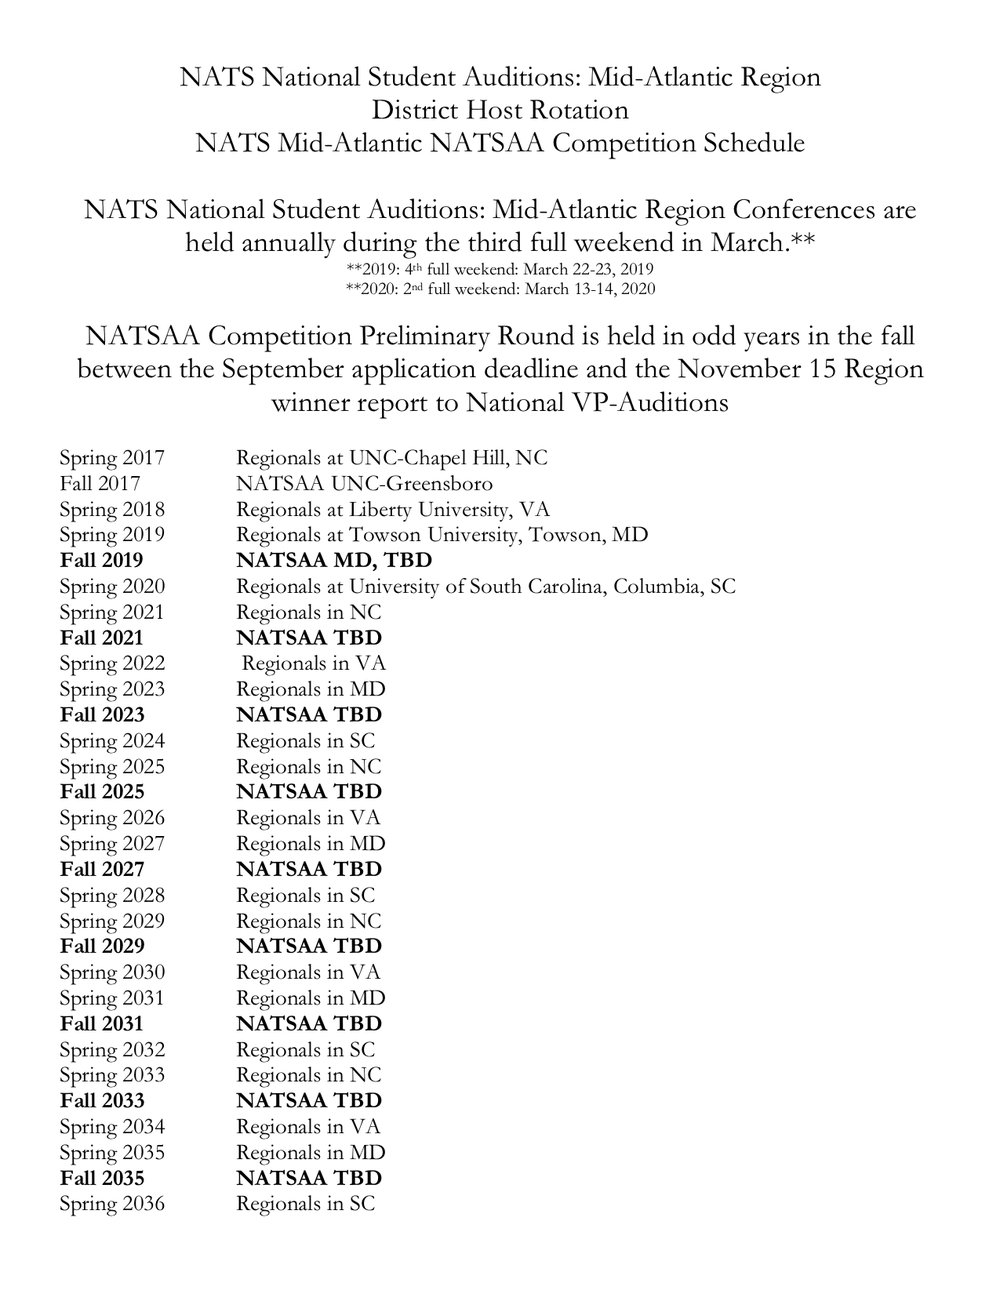 Regional and NATSAA Rotation Schedule through 2036.jpg